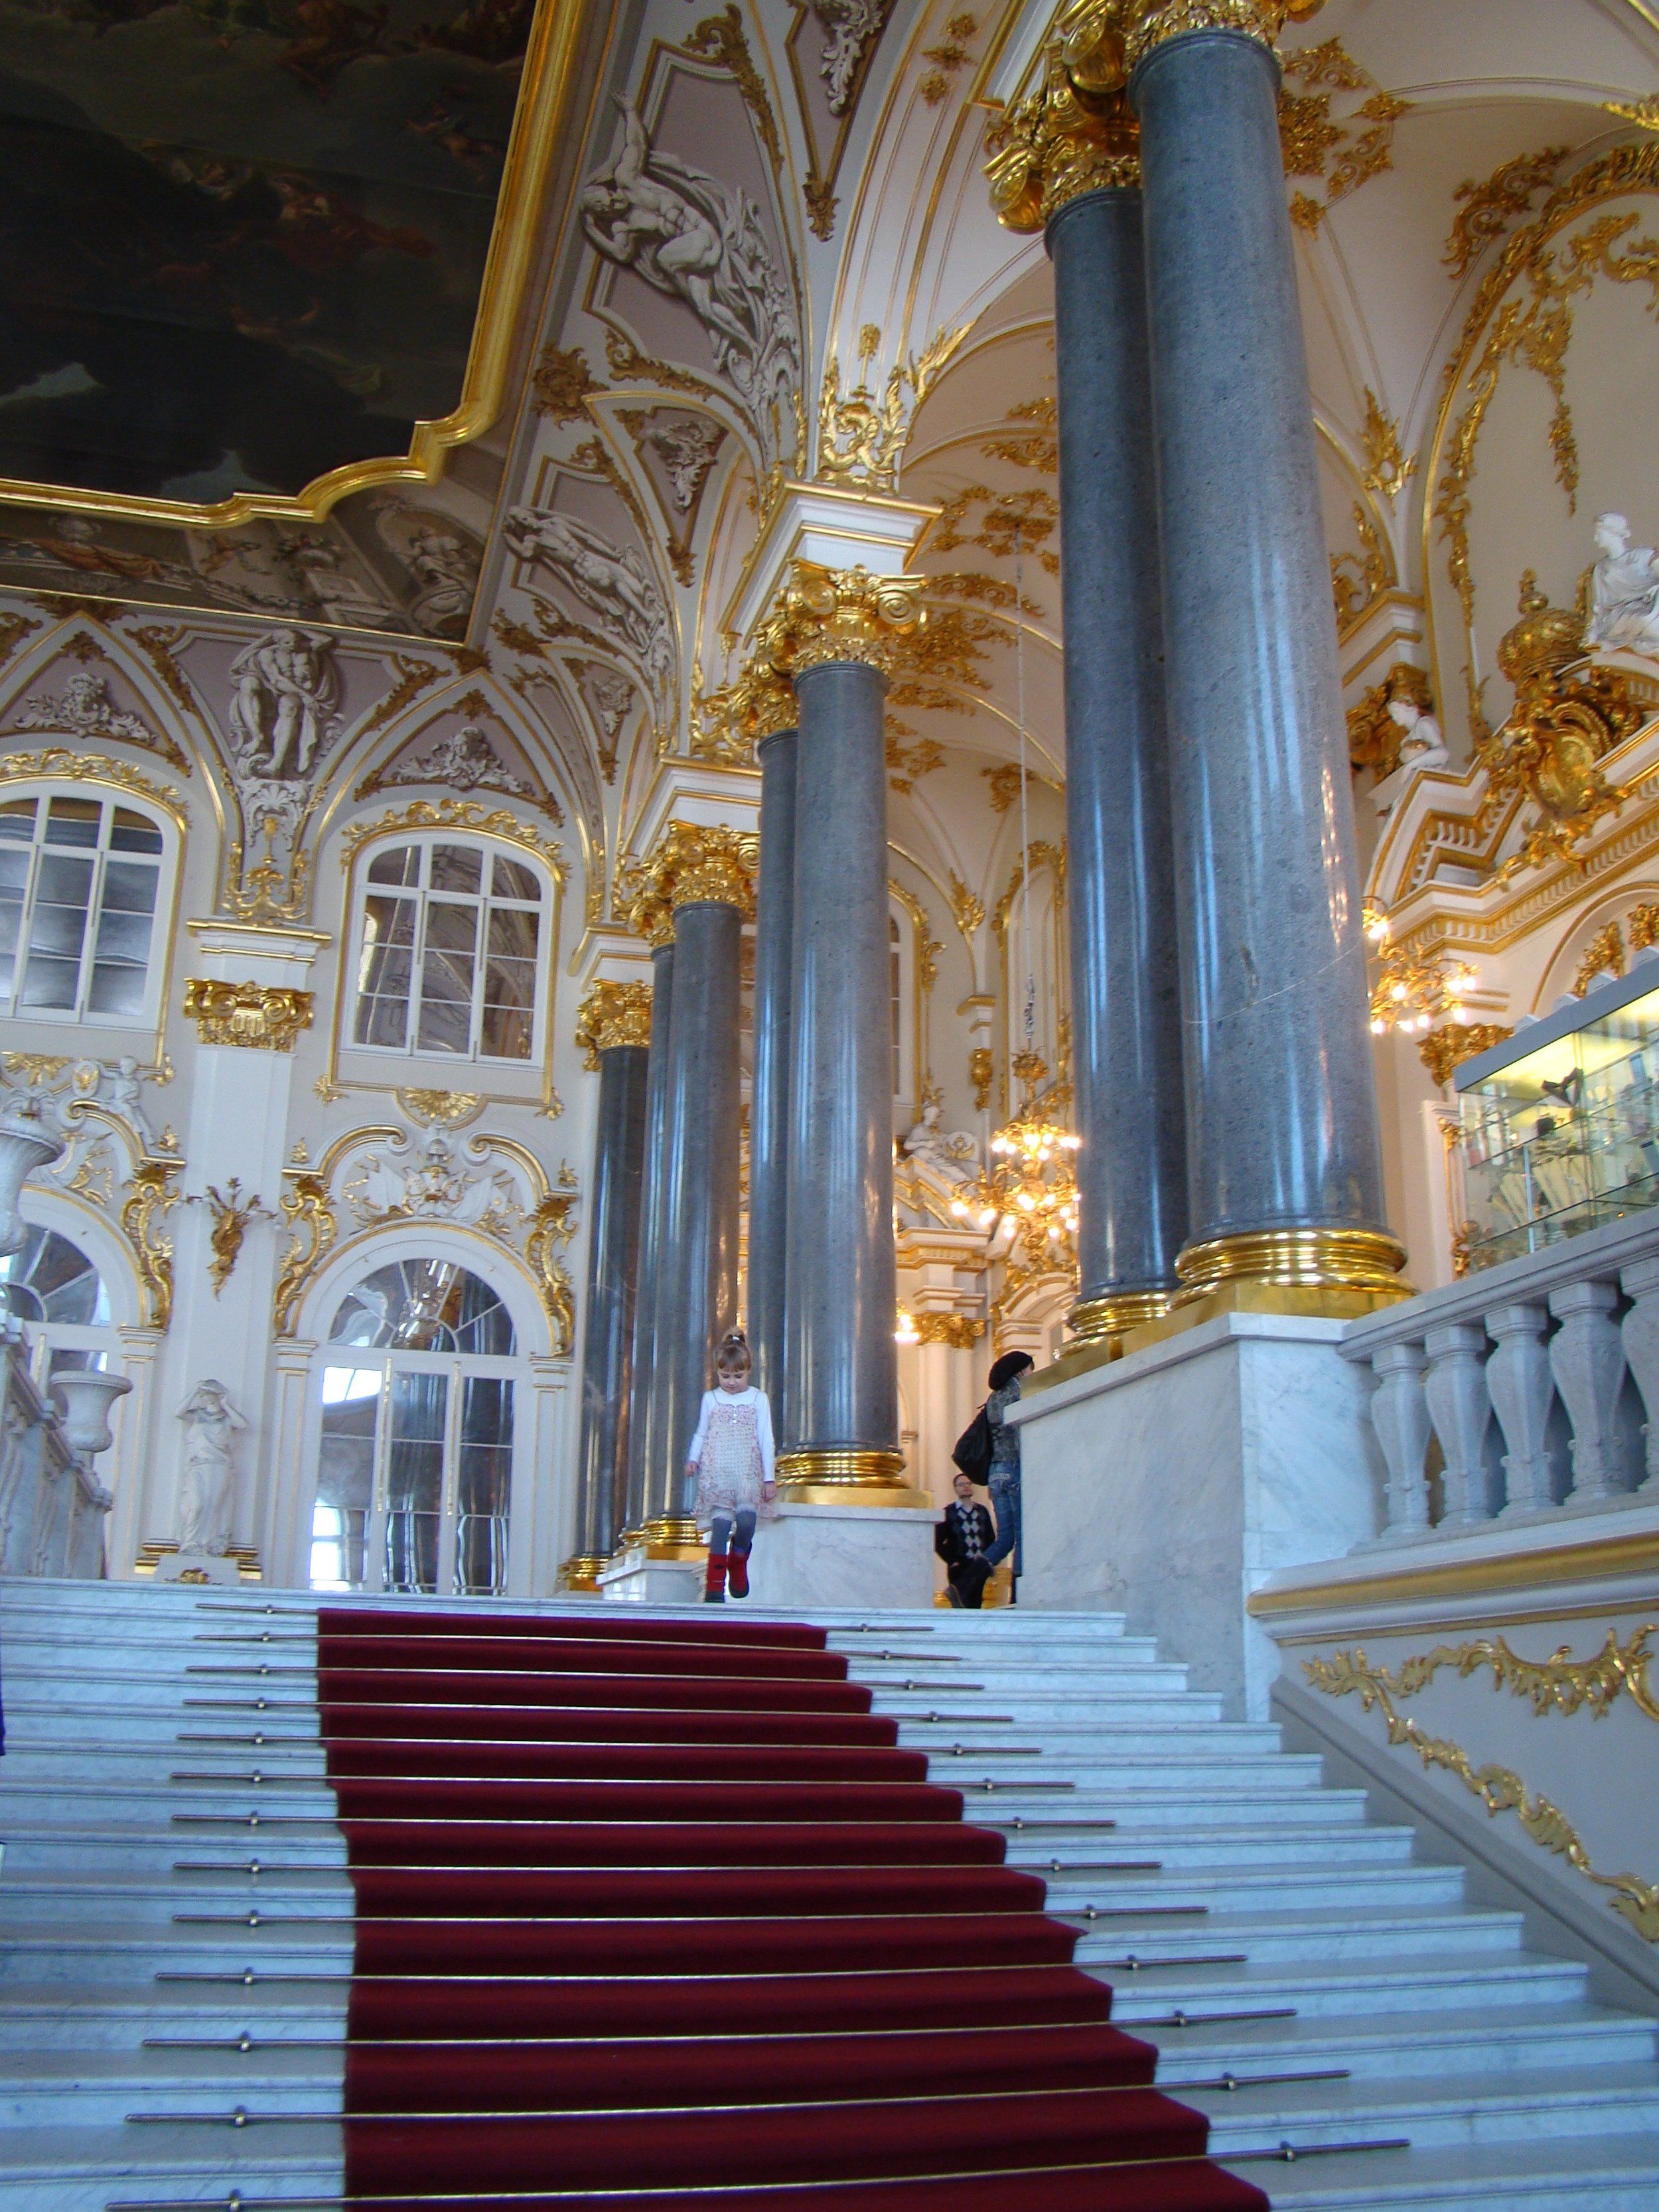 The Jordan staircase in the Winter Palace